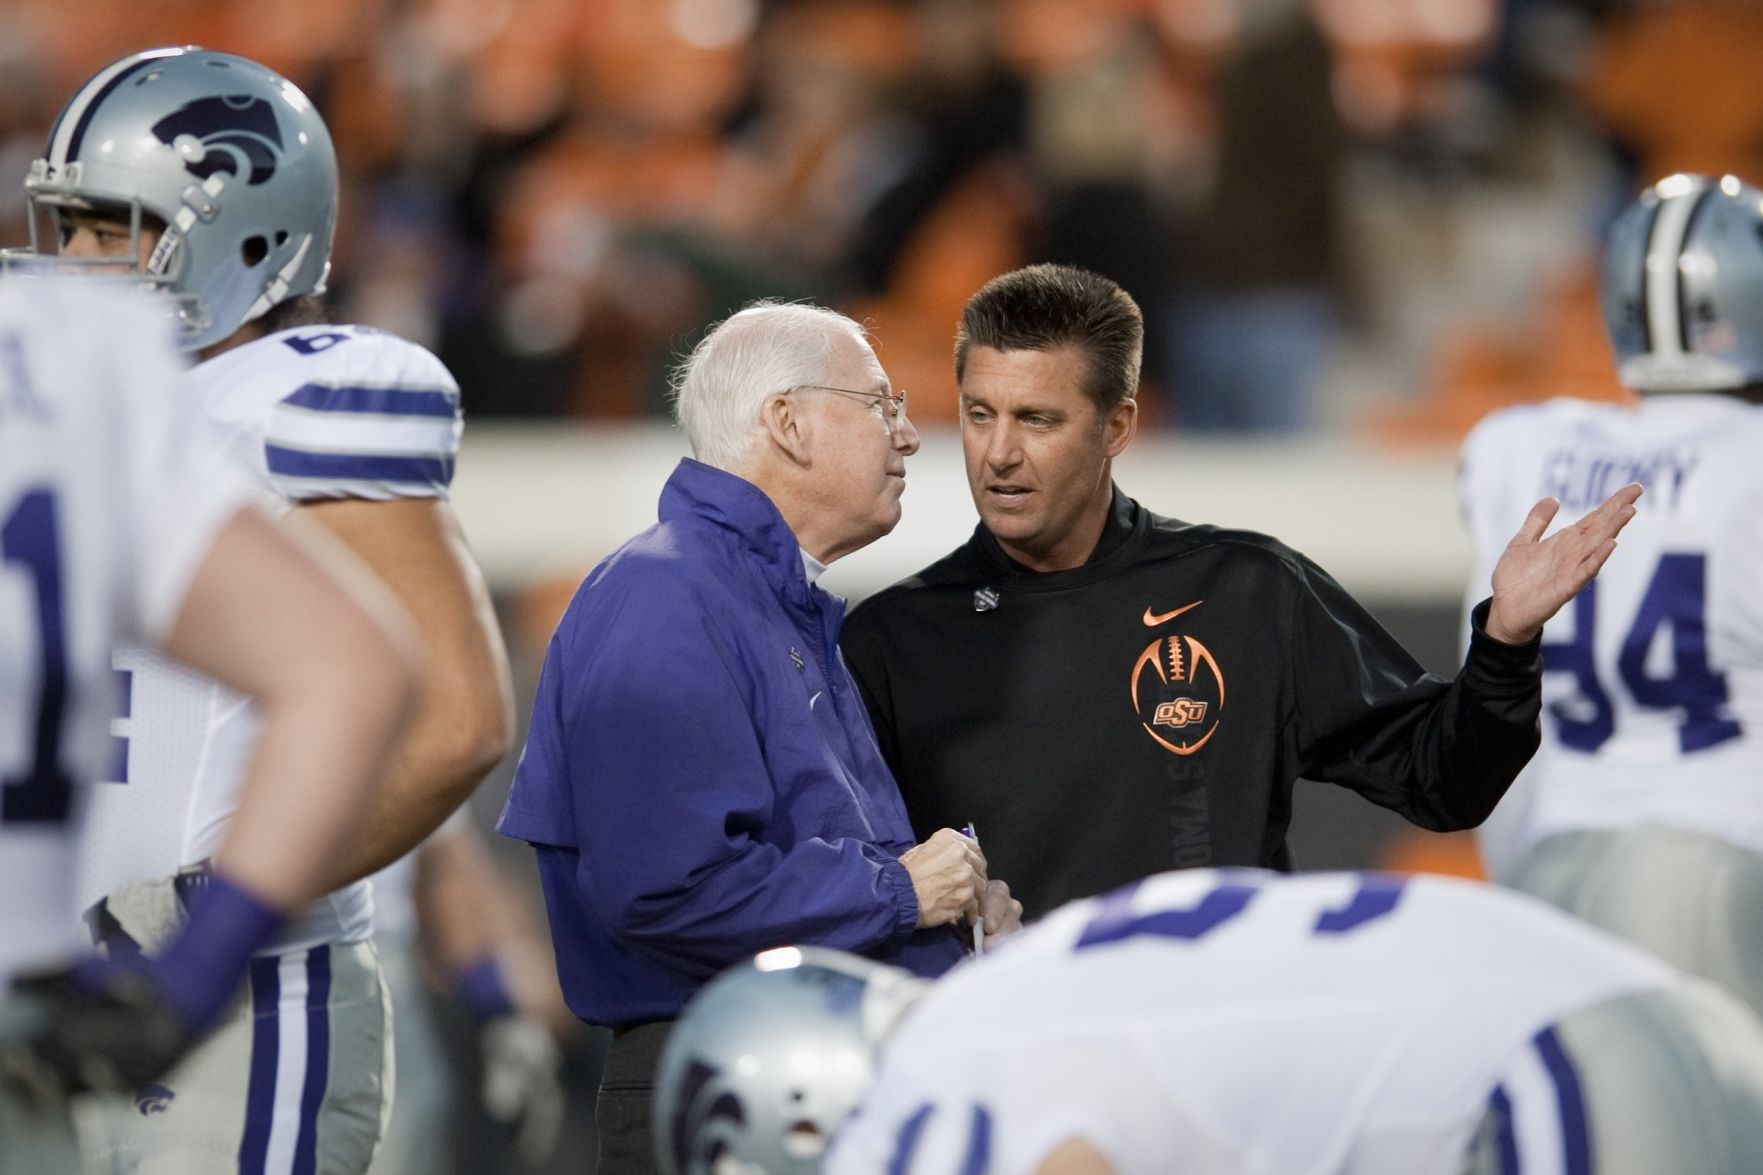 Bill Snyder said his recovery from throat cancer is going well